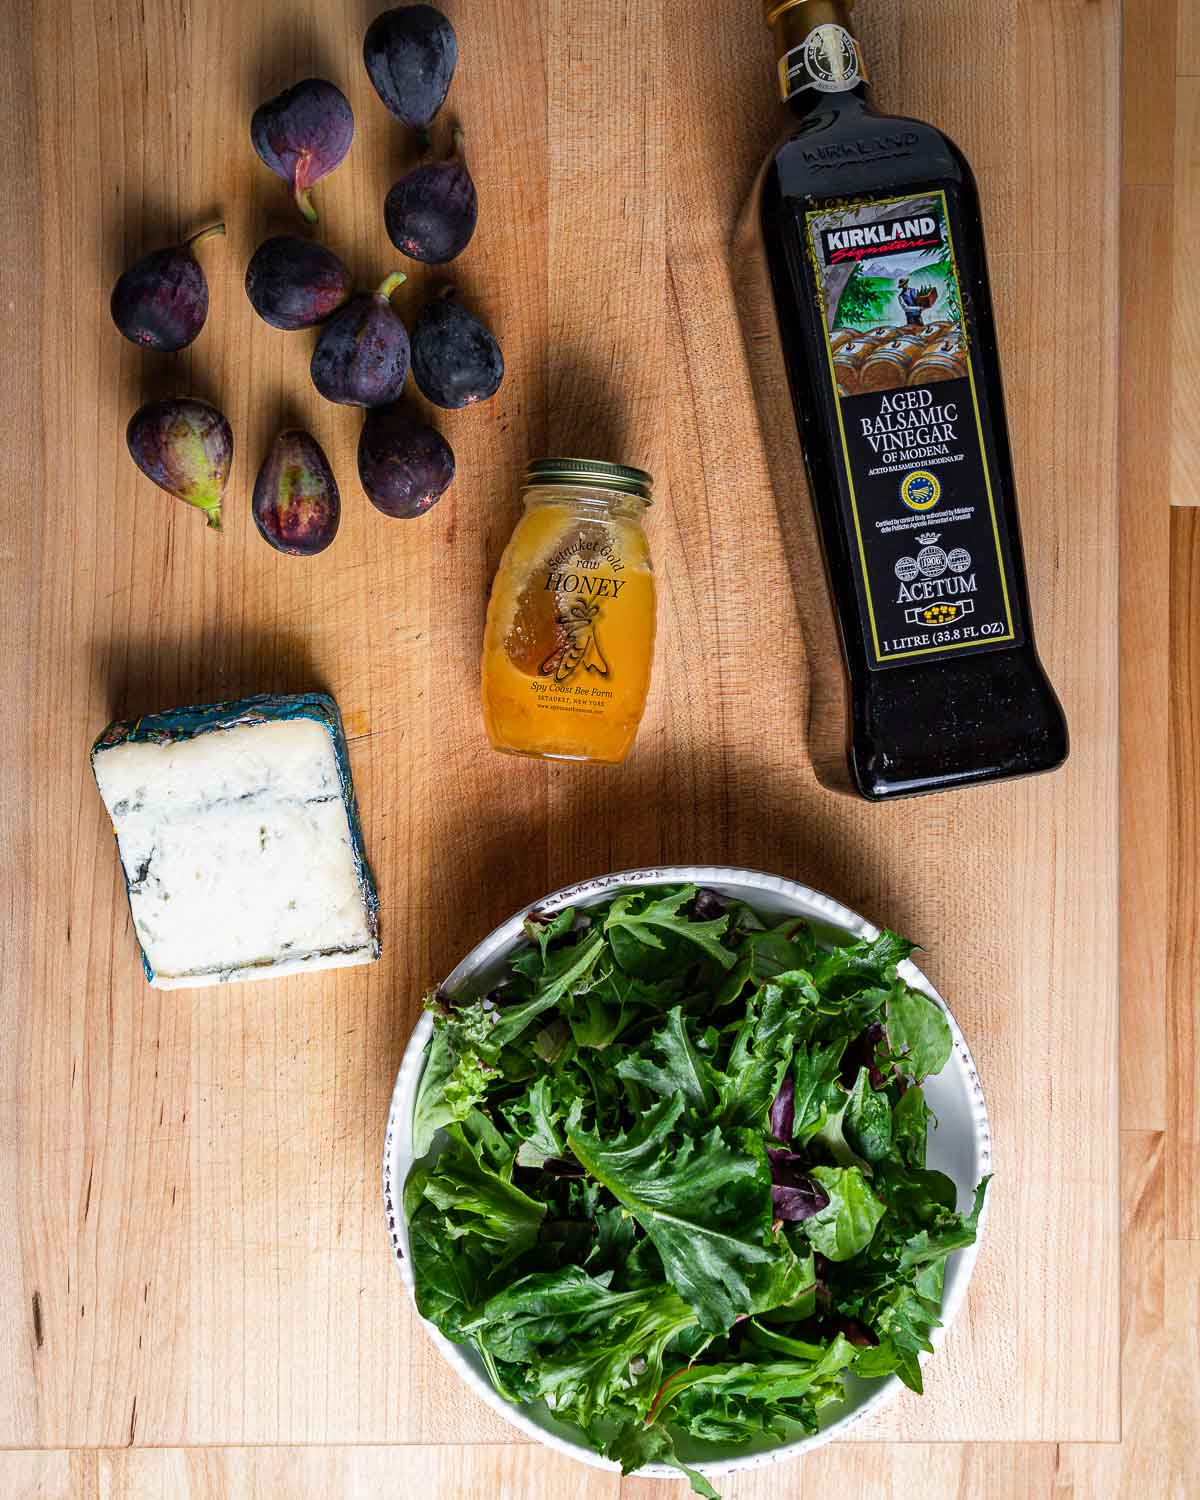 Ingredients shown: figs, honey, balsamic vinegar, gorgonzola cheese, and mixed greens in bowl.